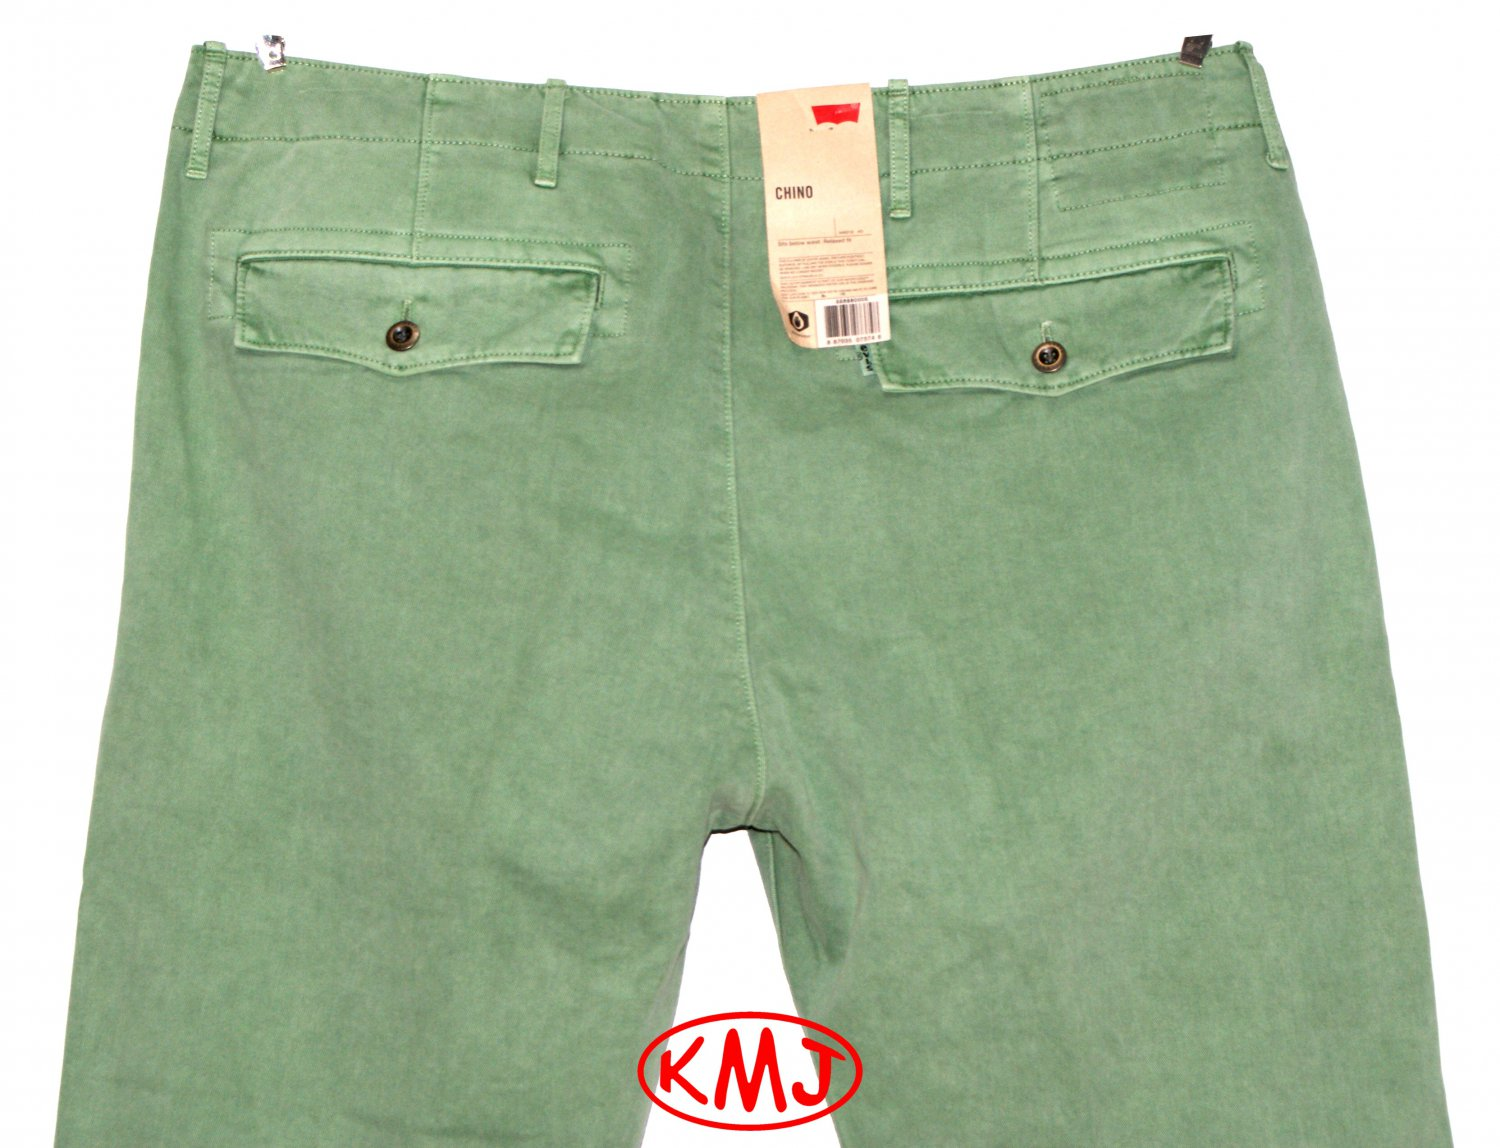 NWT LEVI'S CHINO RELAXED FIT PYTHON GREEN WATER-LESS TWILL TROUSER PANTS in size W30 L30